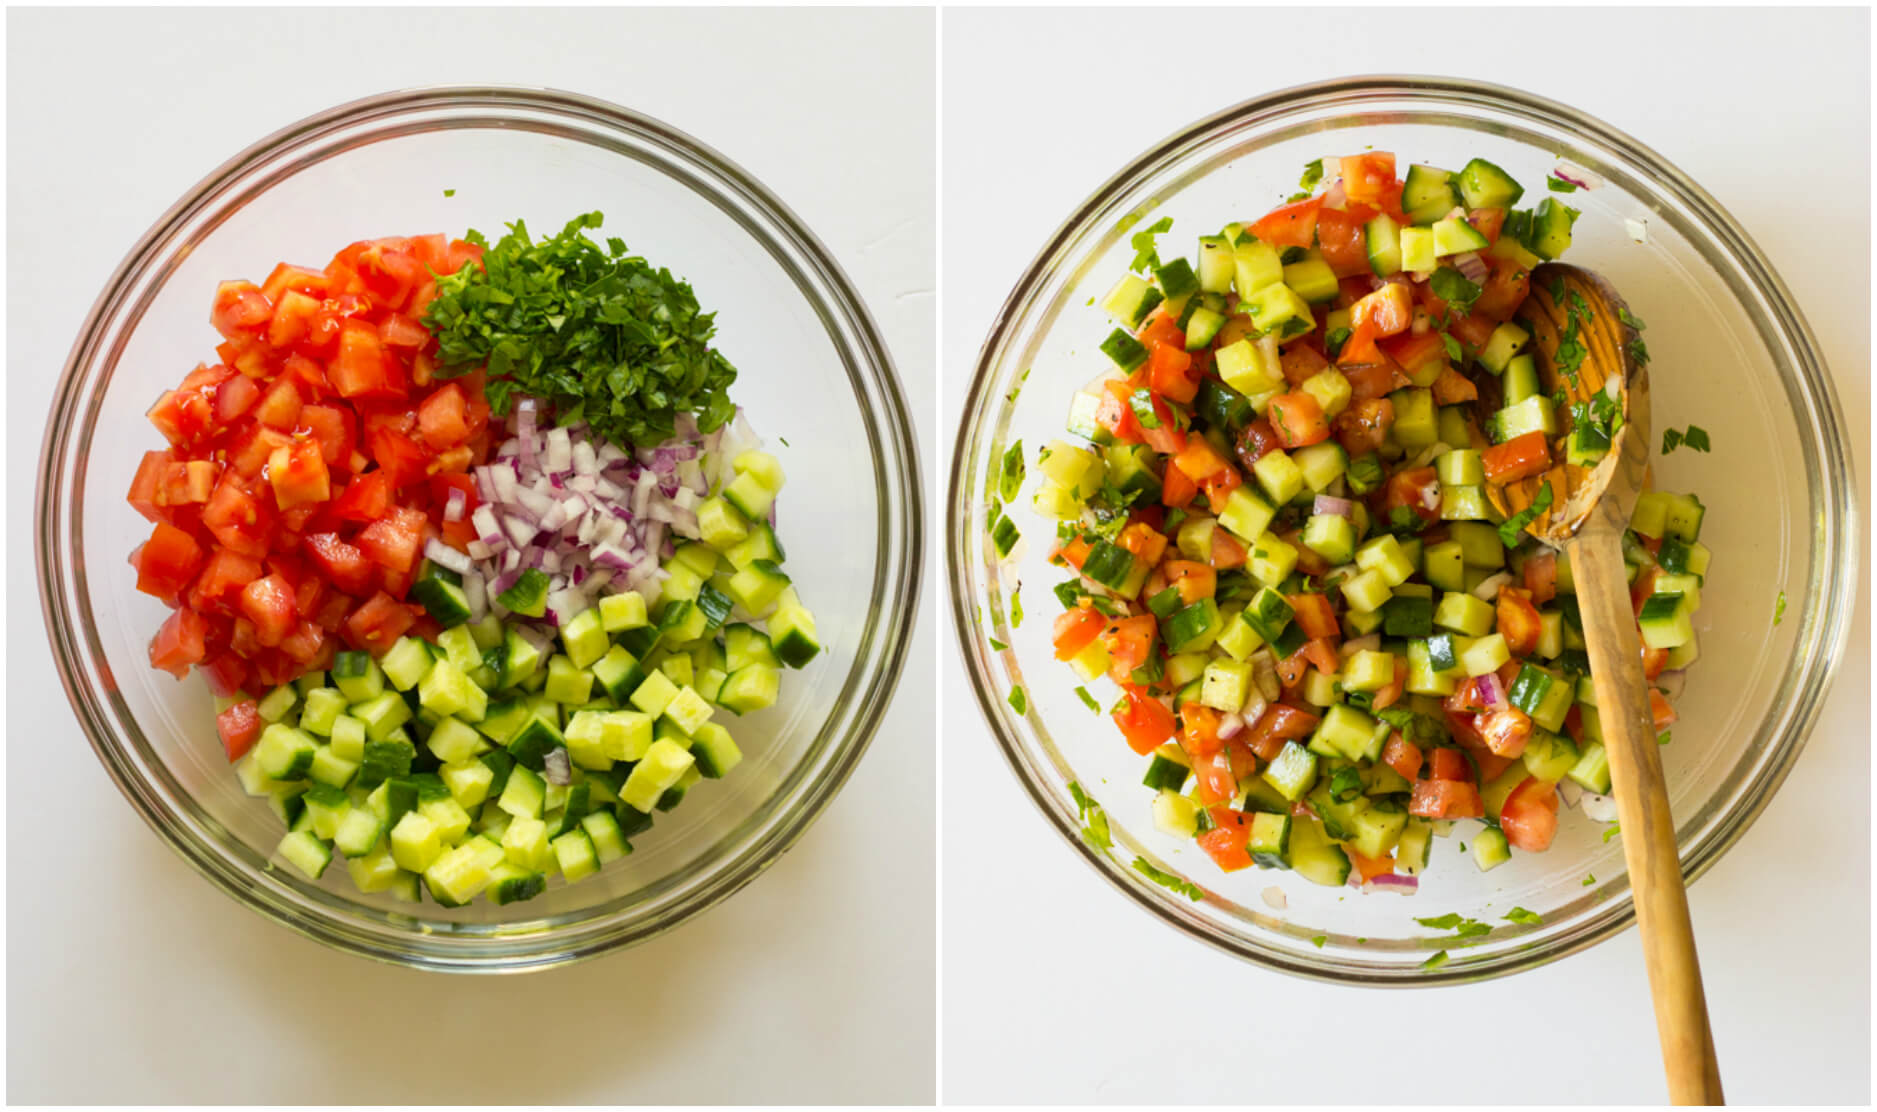 Chopped up cucumber tomato salad in glass bowl